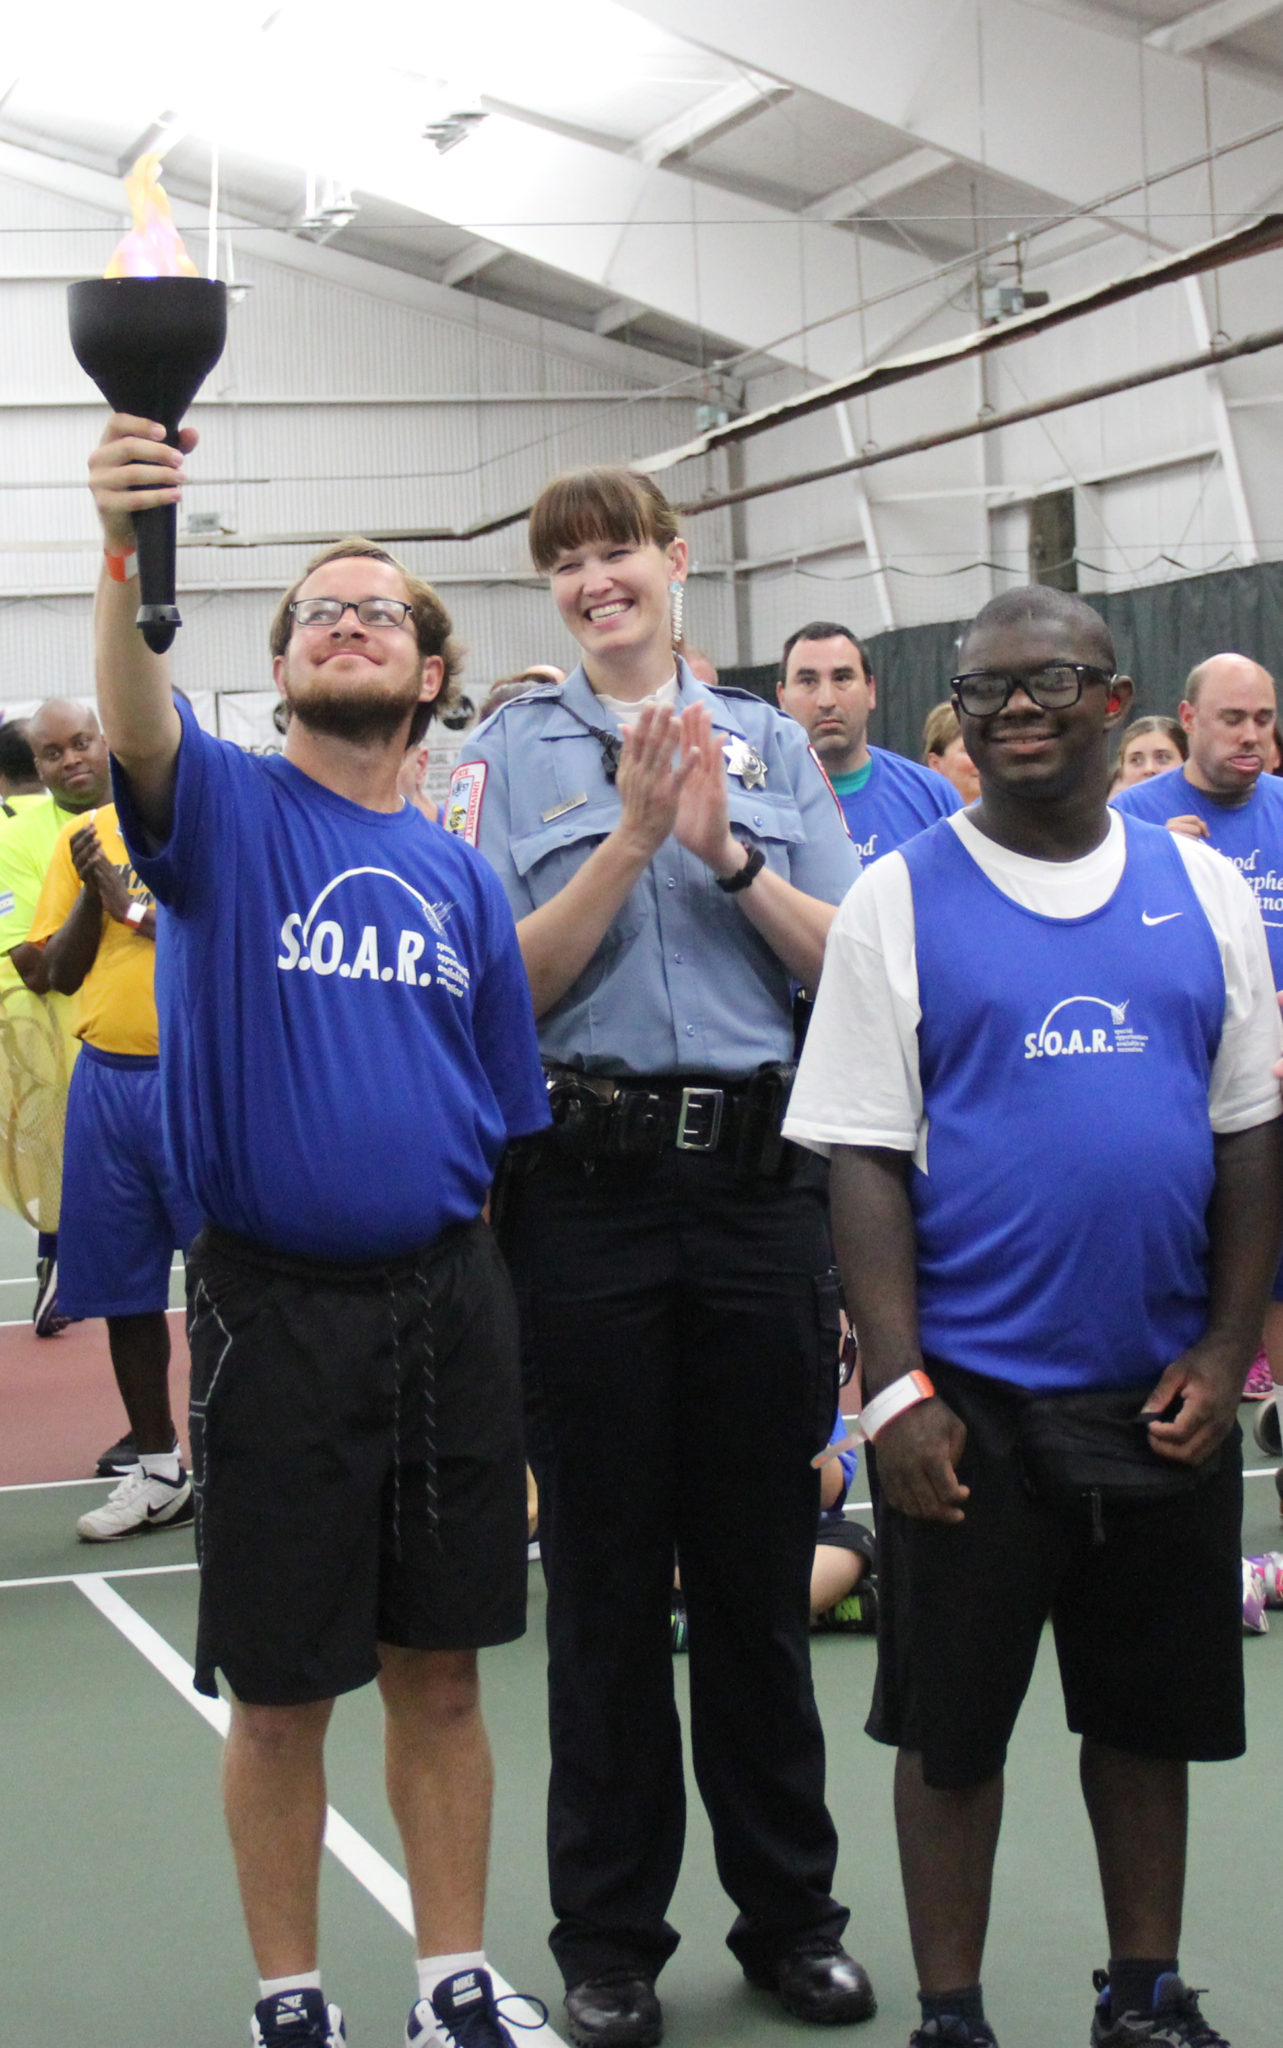 Special Olympics Illinois will hold an Opening Ceremony as part of the  Olympic tradition at 11:30 a.m. at Evergreen Racquet Club.